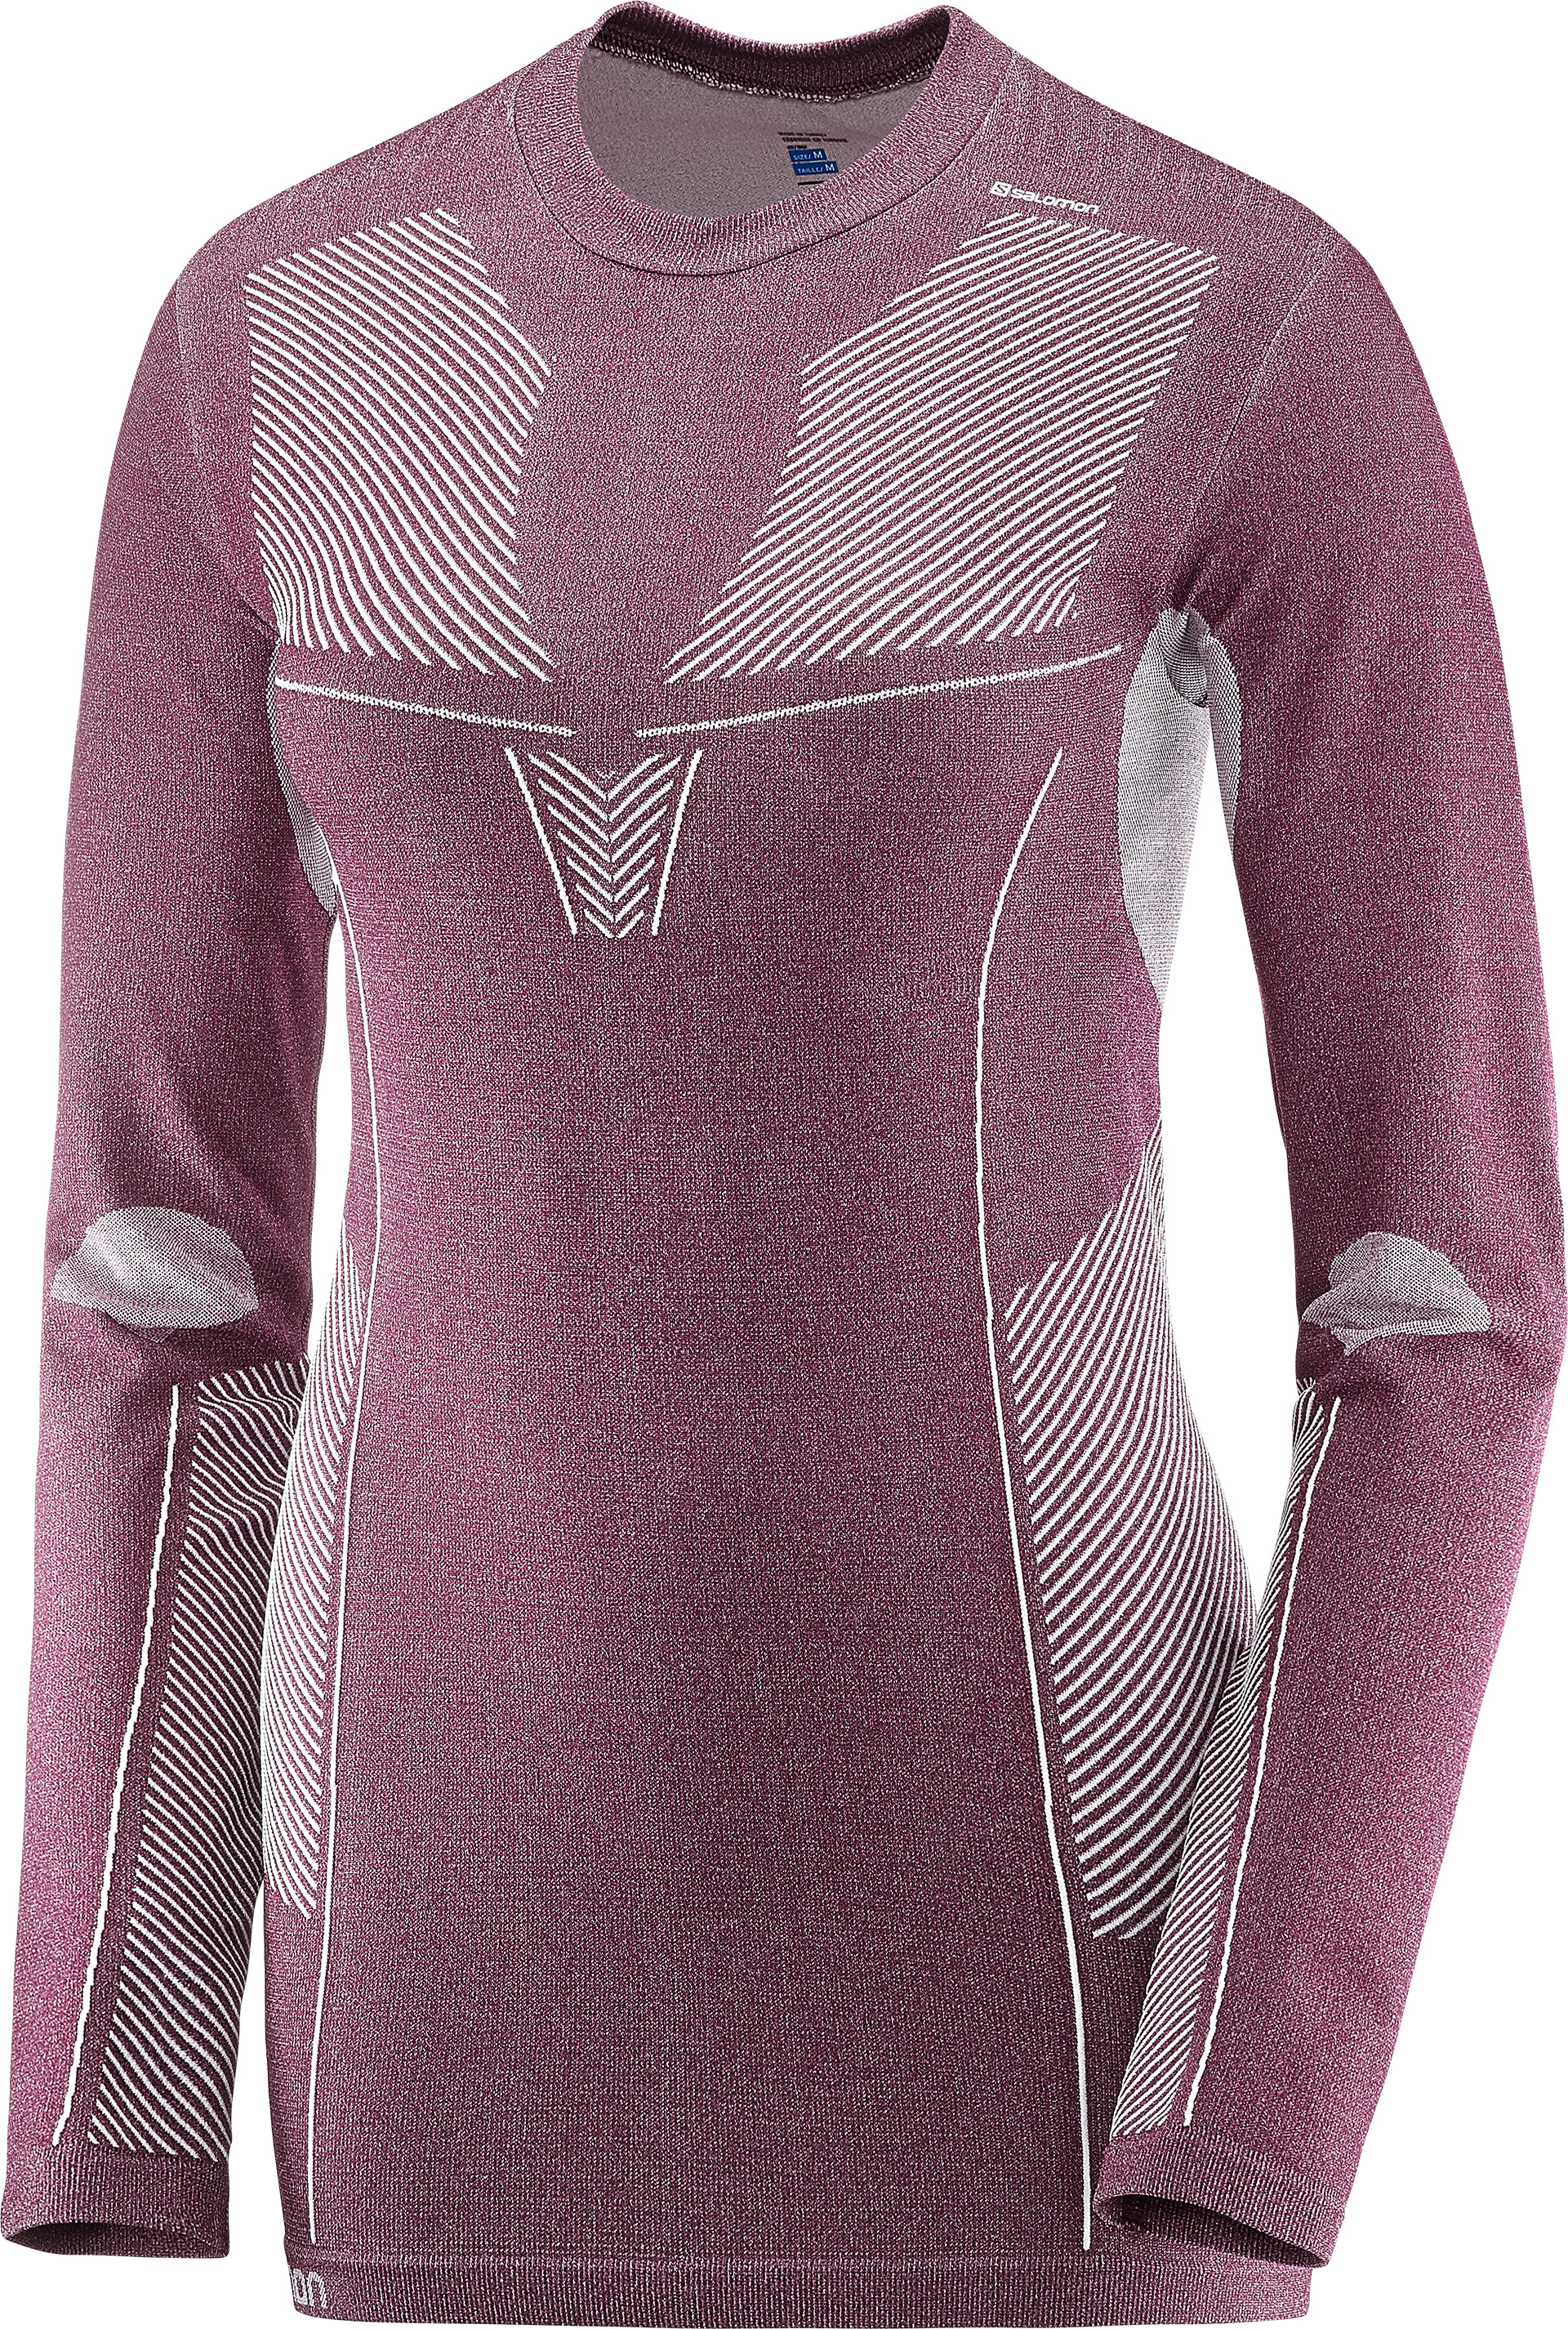 Salomon Primo Warm LS CN Tee Fig 397172 L